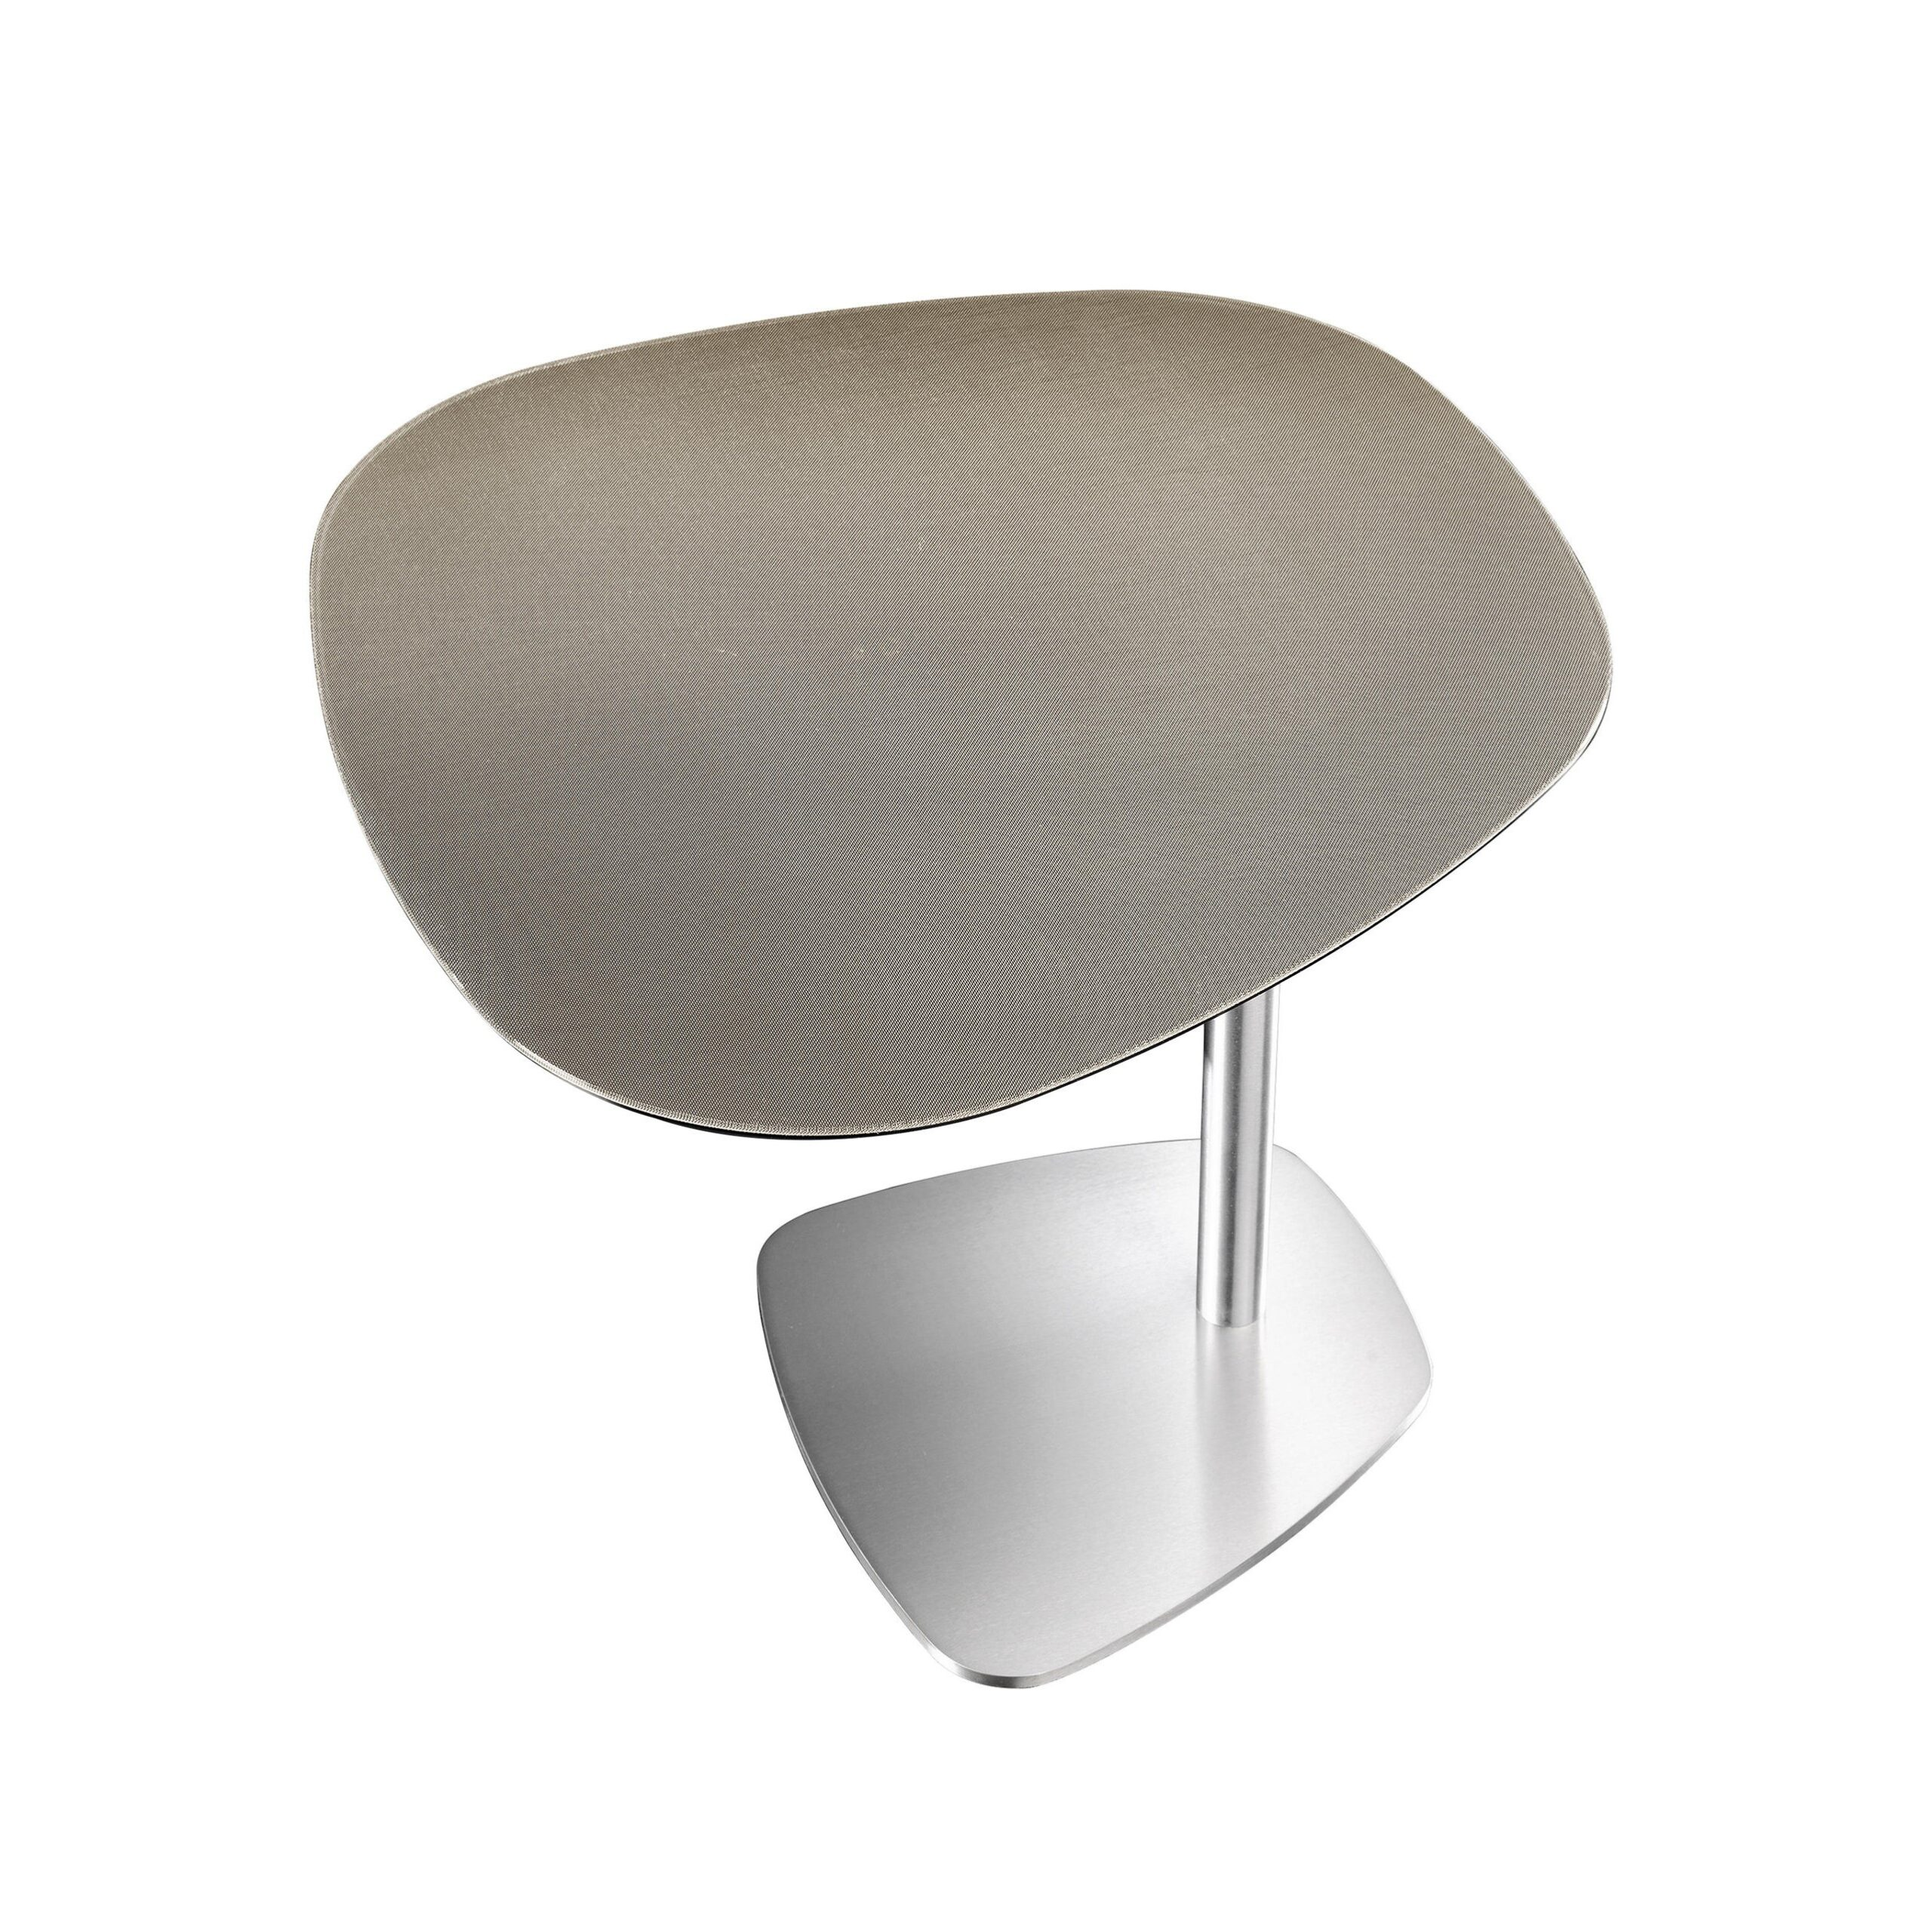 luxury furniture stores calgary end tables side tables seventy end table seventy side table reflex angelo luxuries of europe